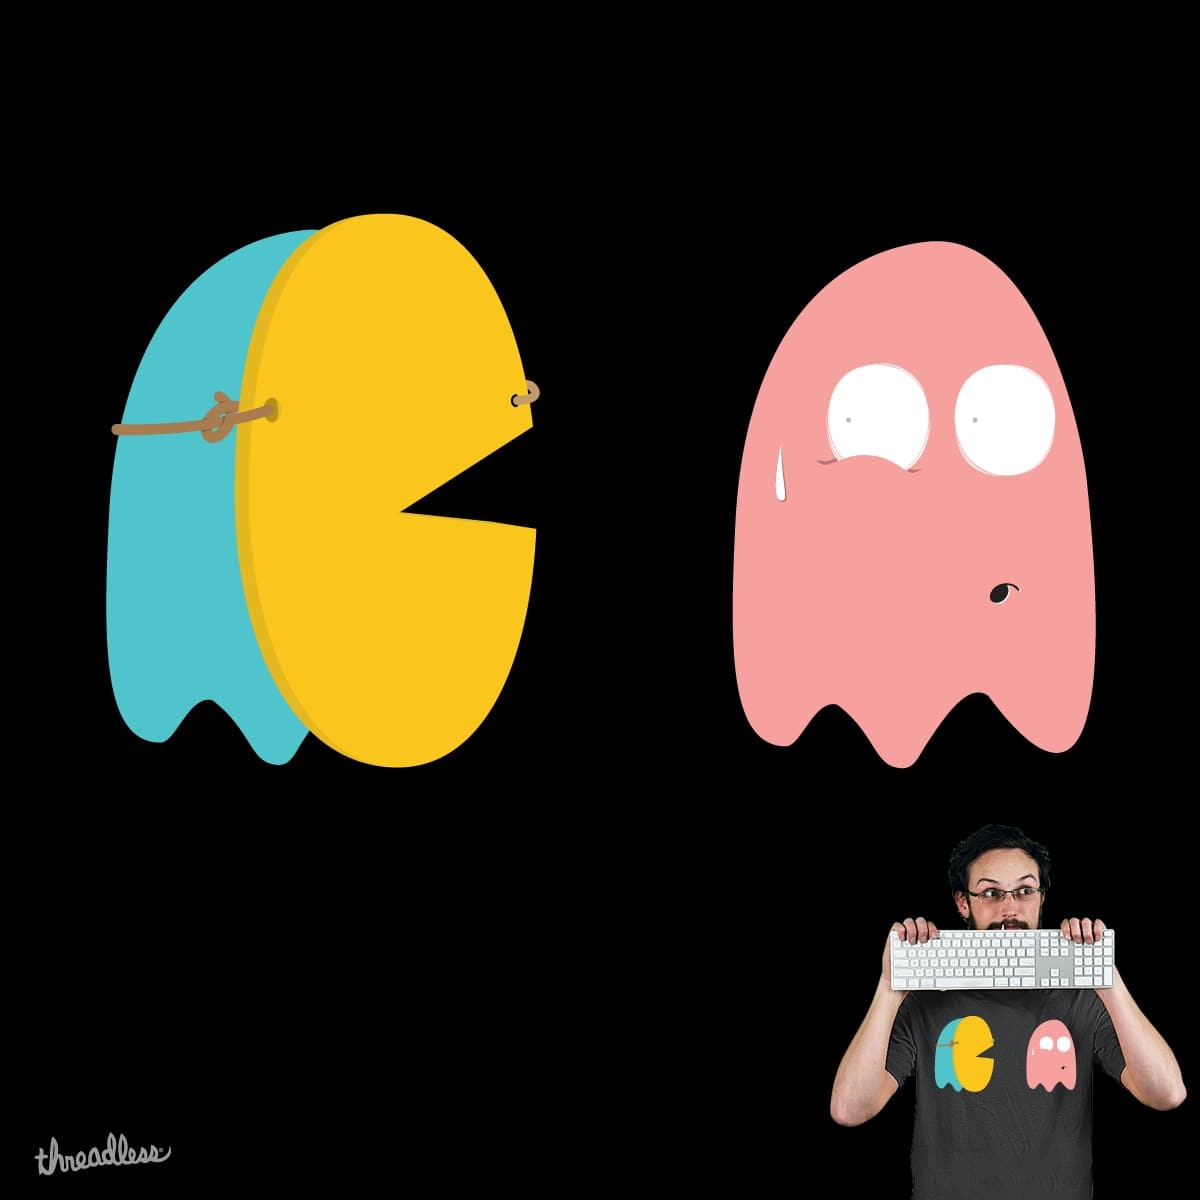 scary by paulobbruno on Threadless